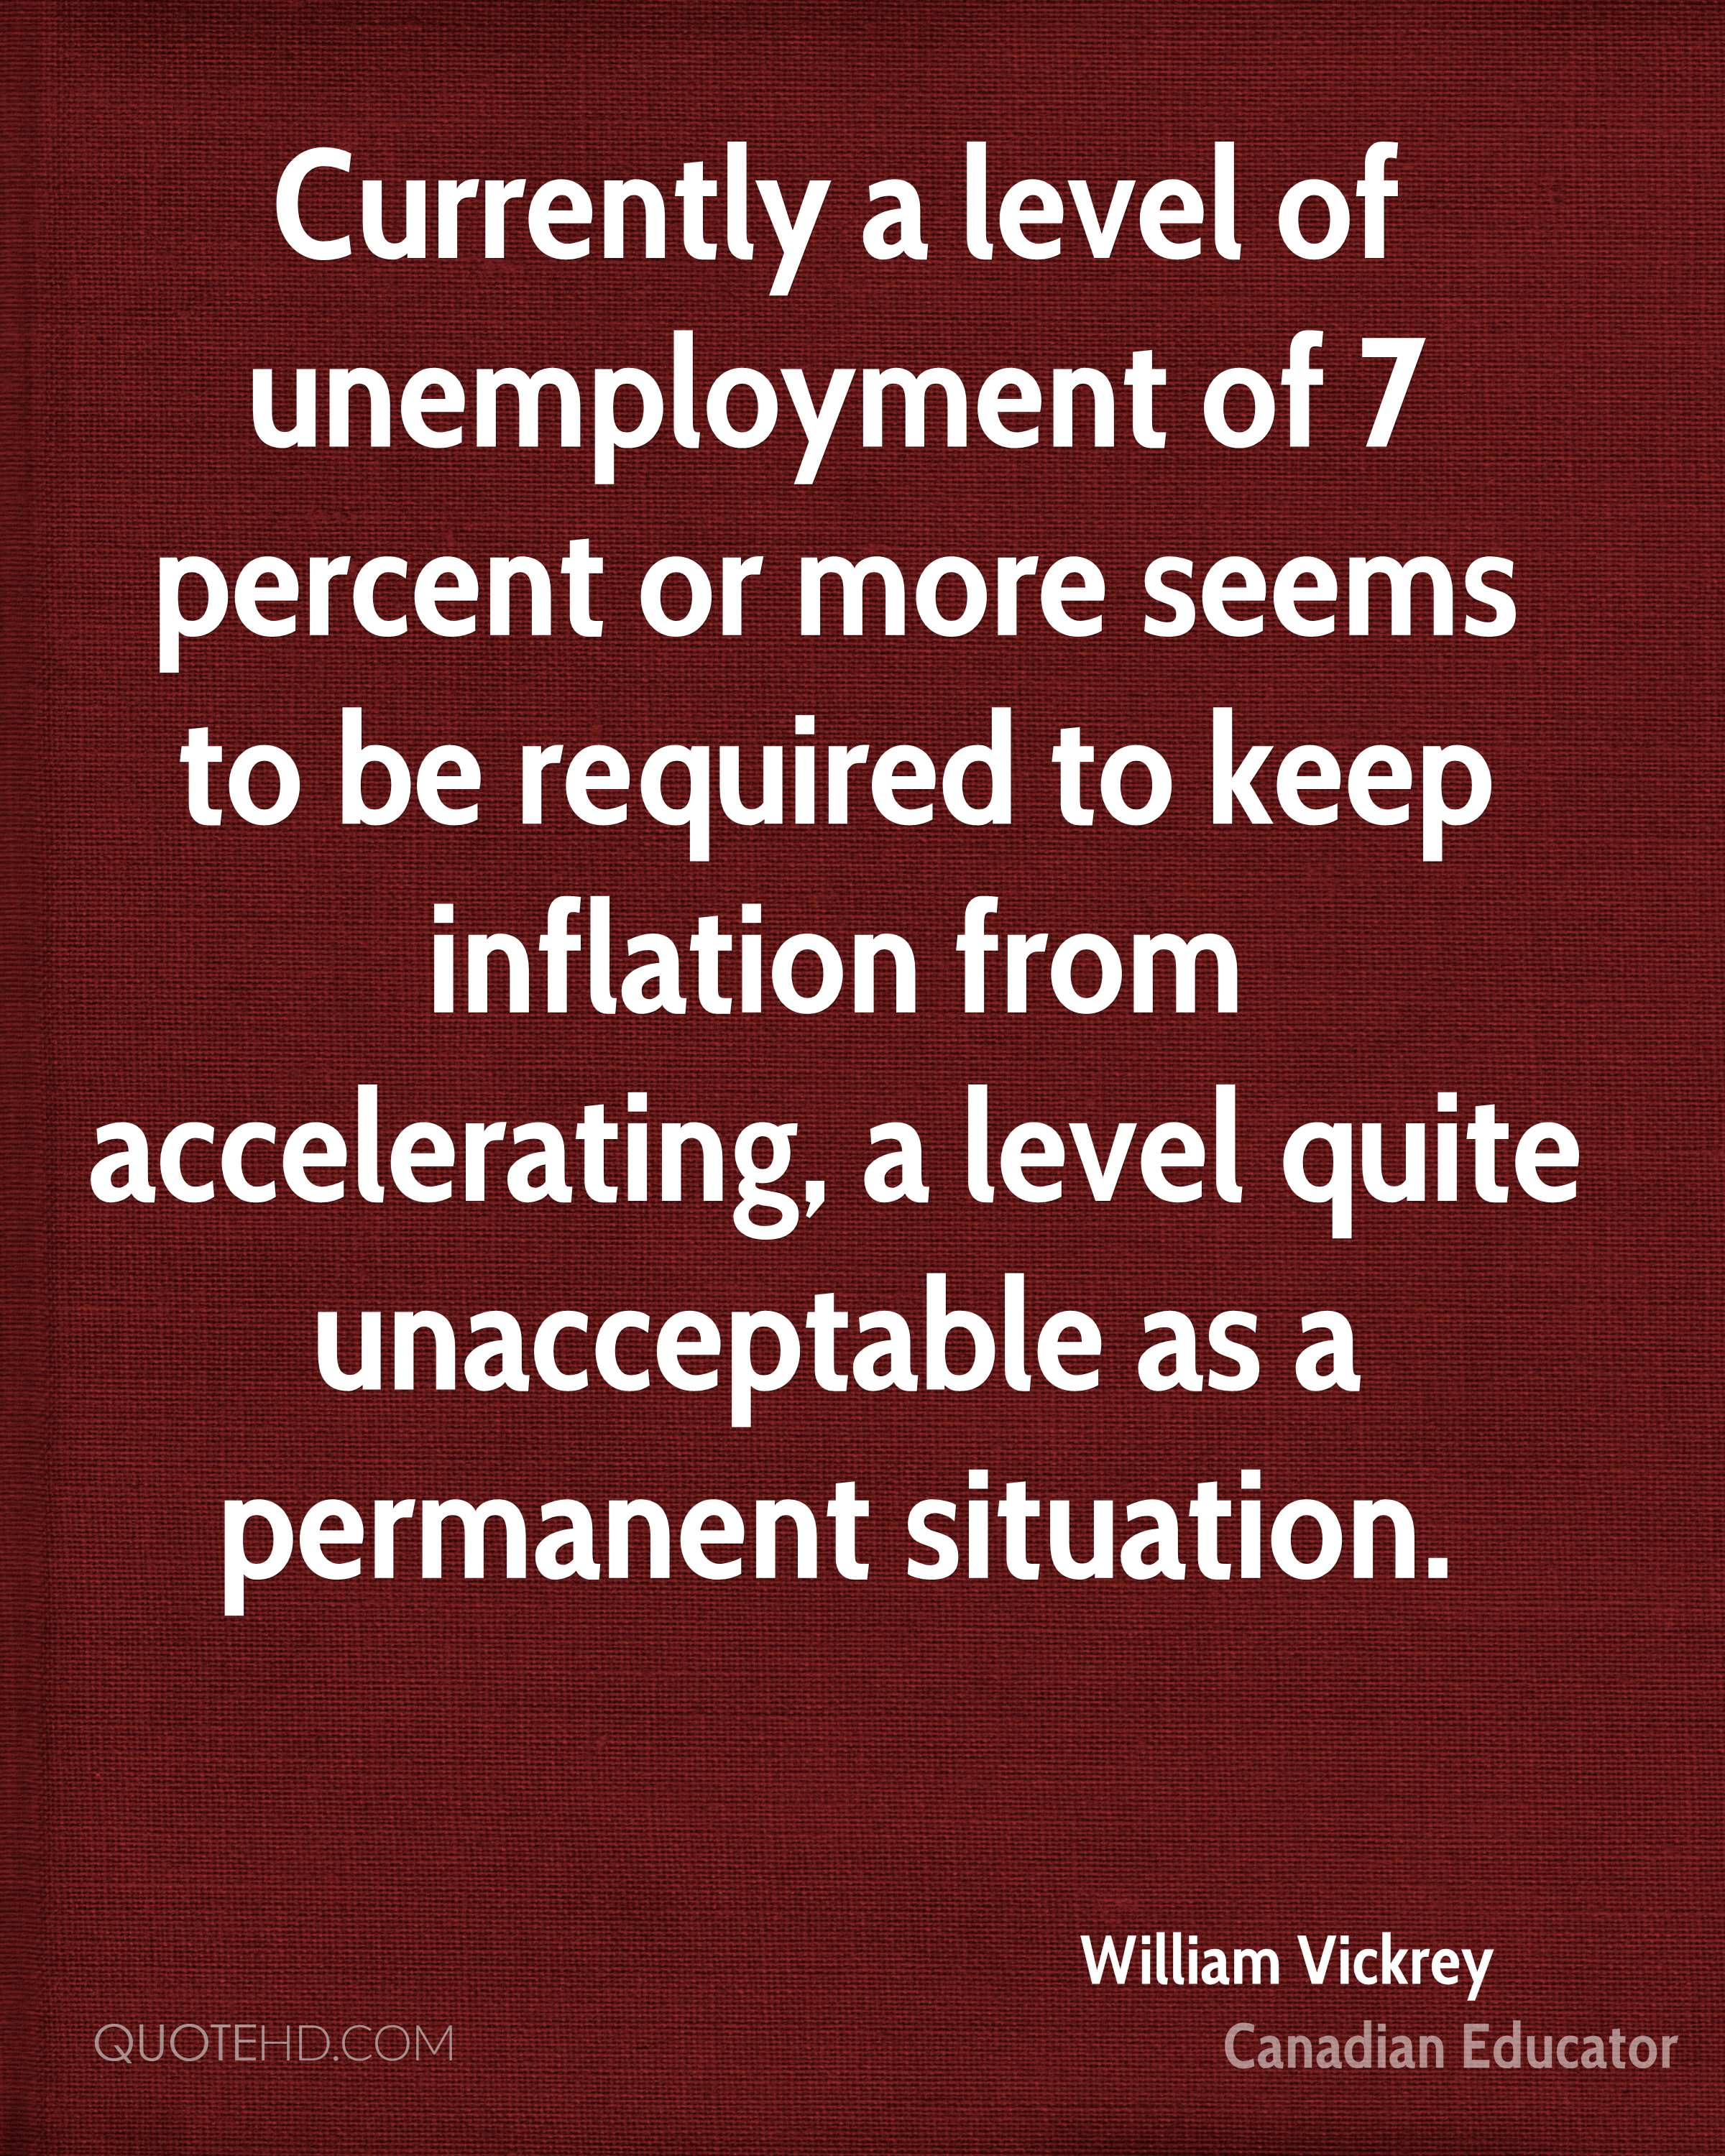 Currently a level of unemployment of 7 percent or more seems to be required to keep inflation from accelerating, a level quite unacceptable as a permanent situation.